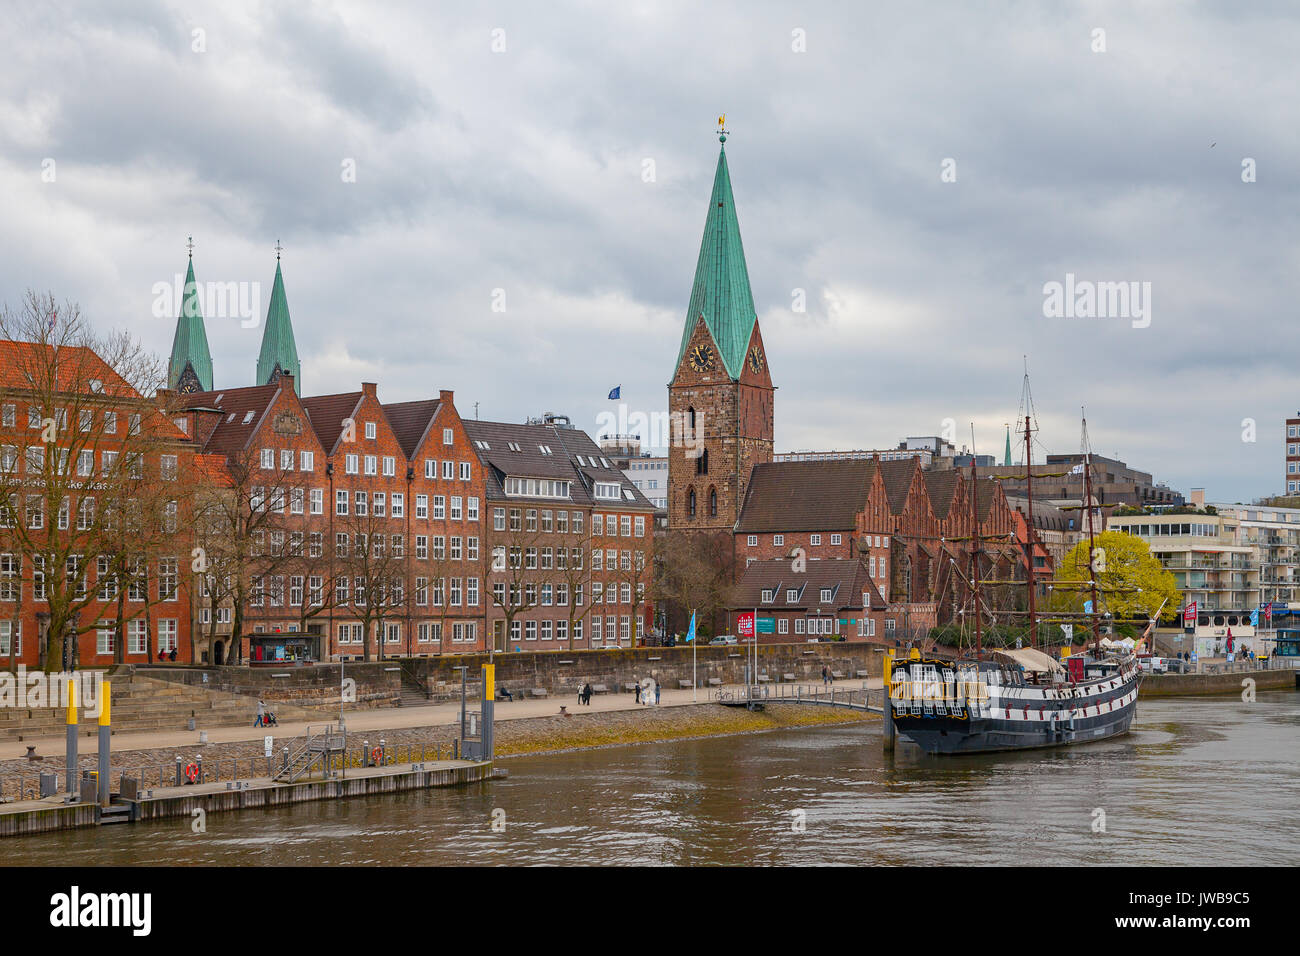 BREMEN, GERMANY - 16 APR 2016: View of old town along Weser river - Stock Image